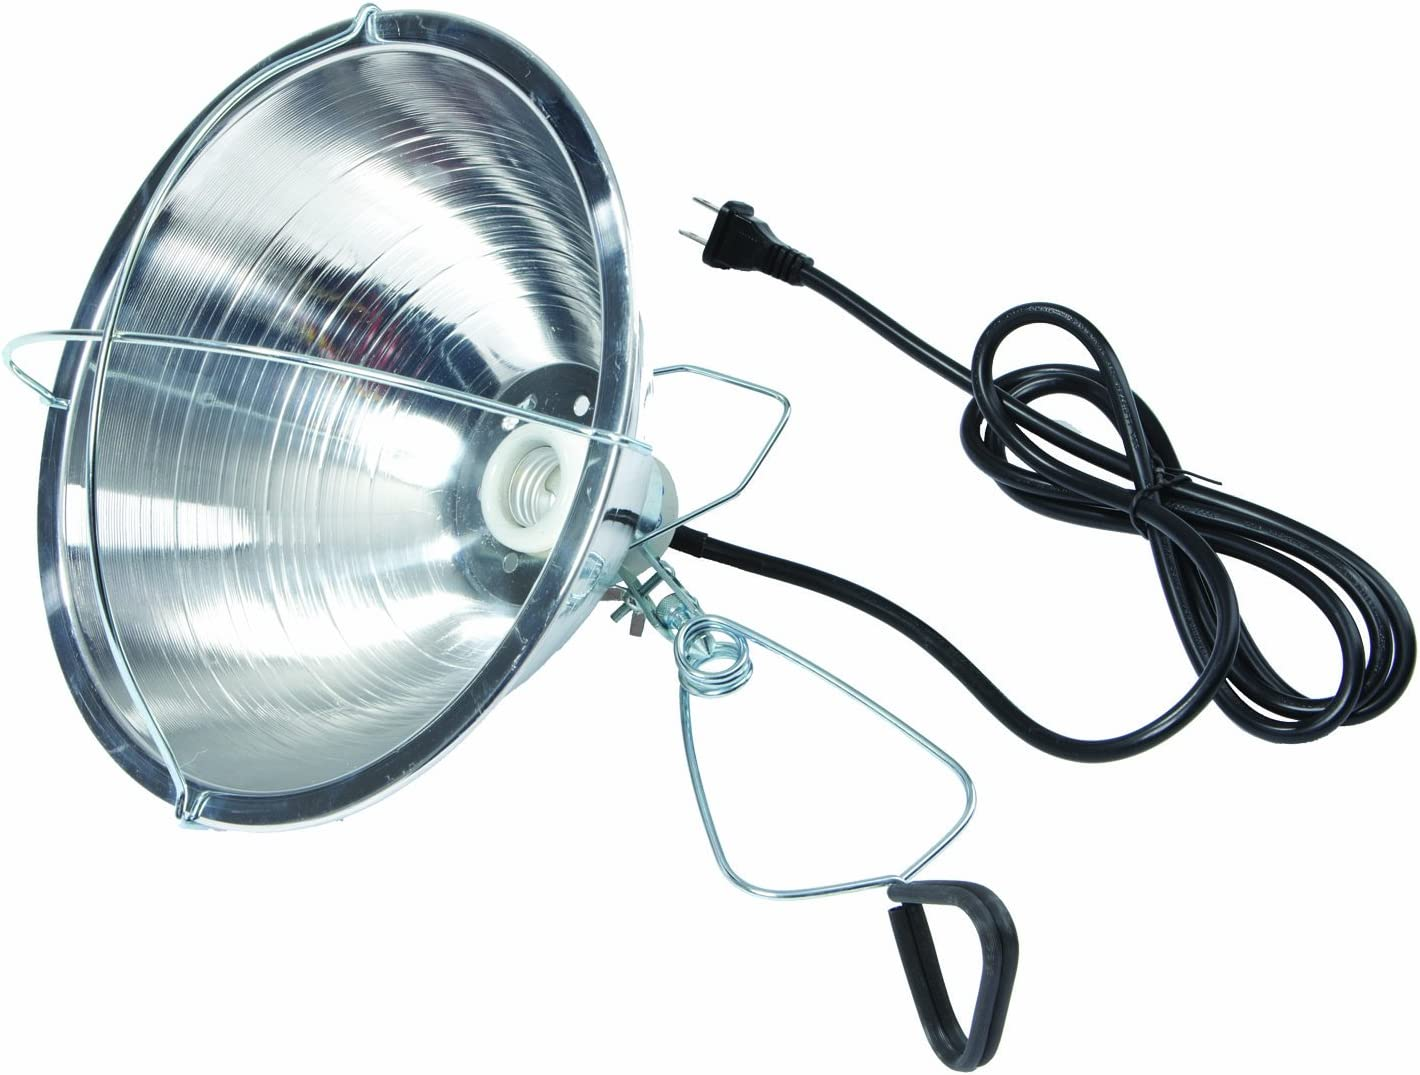 REFLECTIVE BROODER HEAT LAMP FOR YOUR CHICKS INCLUDES 250 WATT RED BULB!